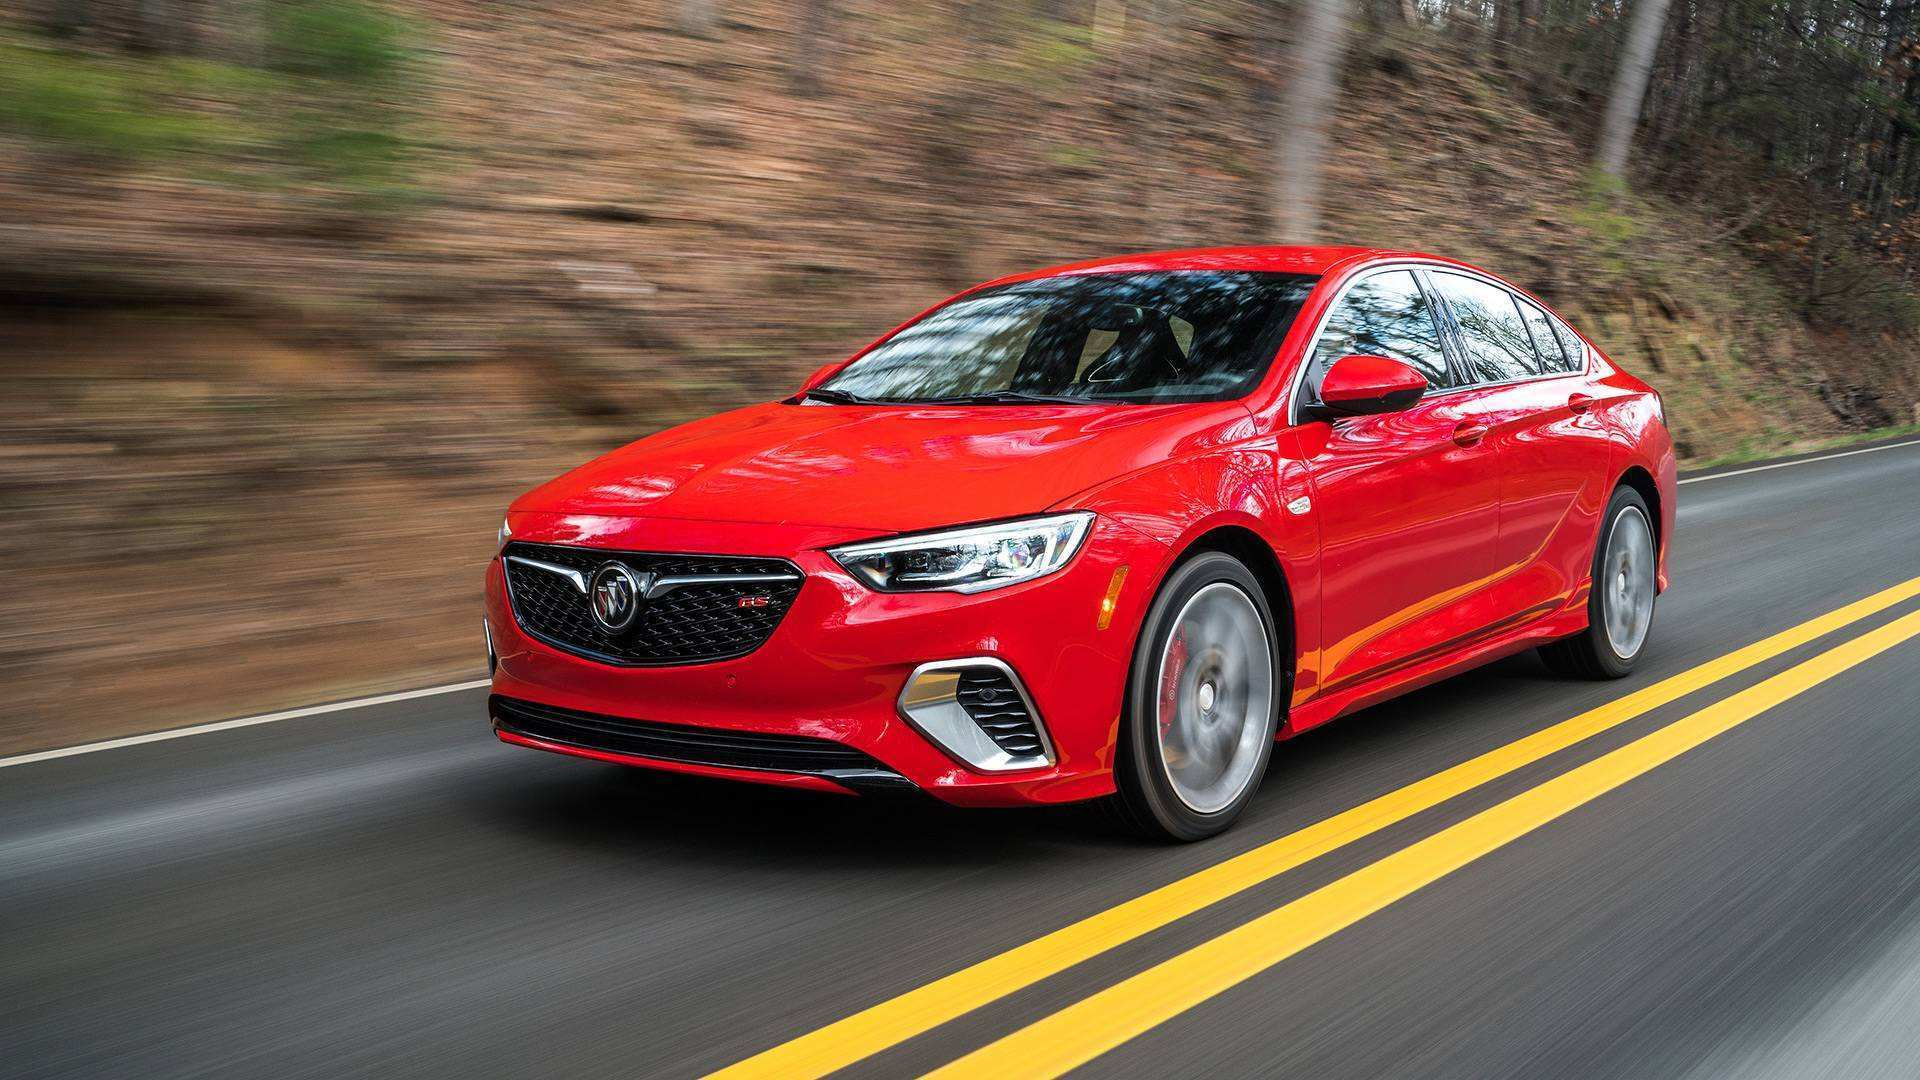 51 Gallery of New 2019 Buick Regal Hatchback Concept Redesign And Review Release with New 2019 Buick Regal Hatchback Concept Redesign And Review